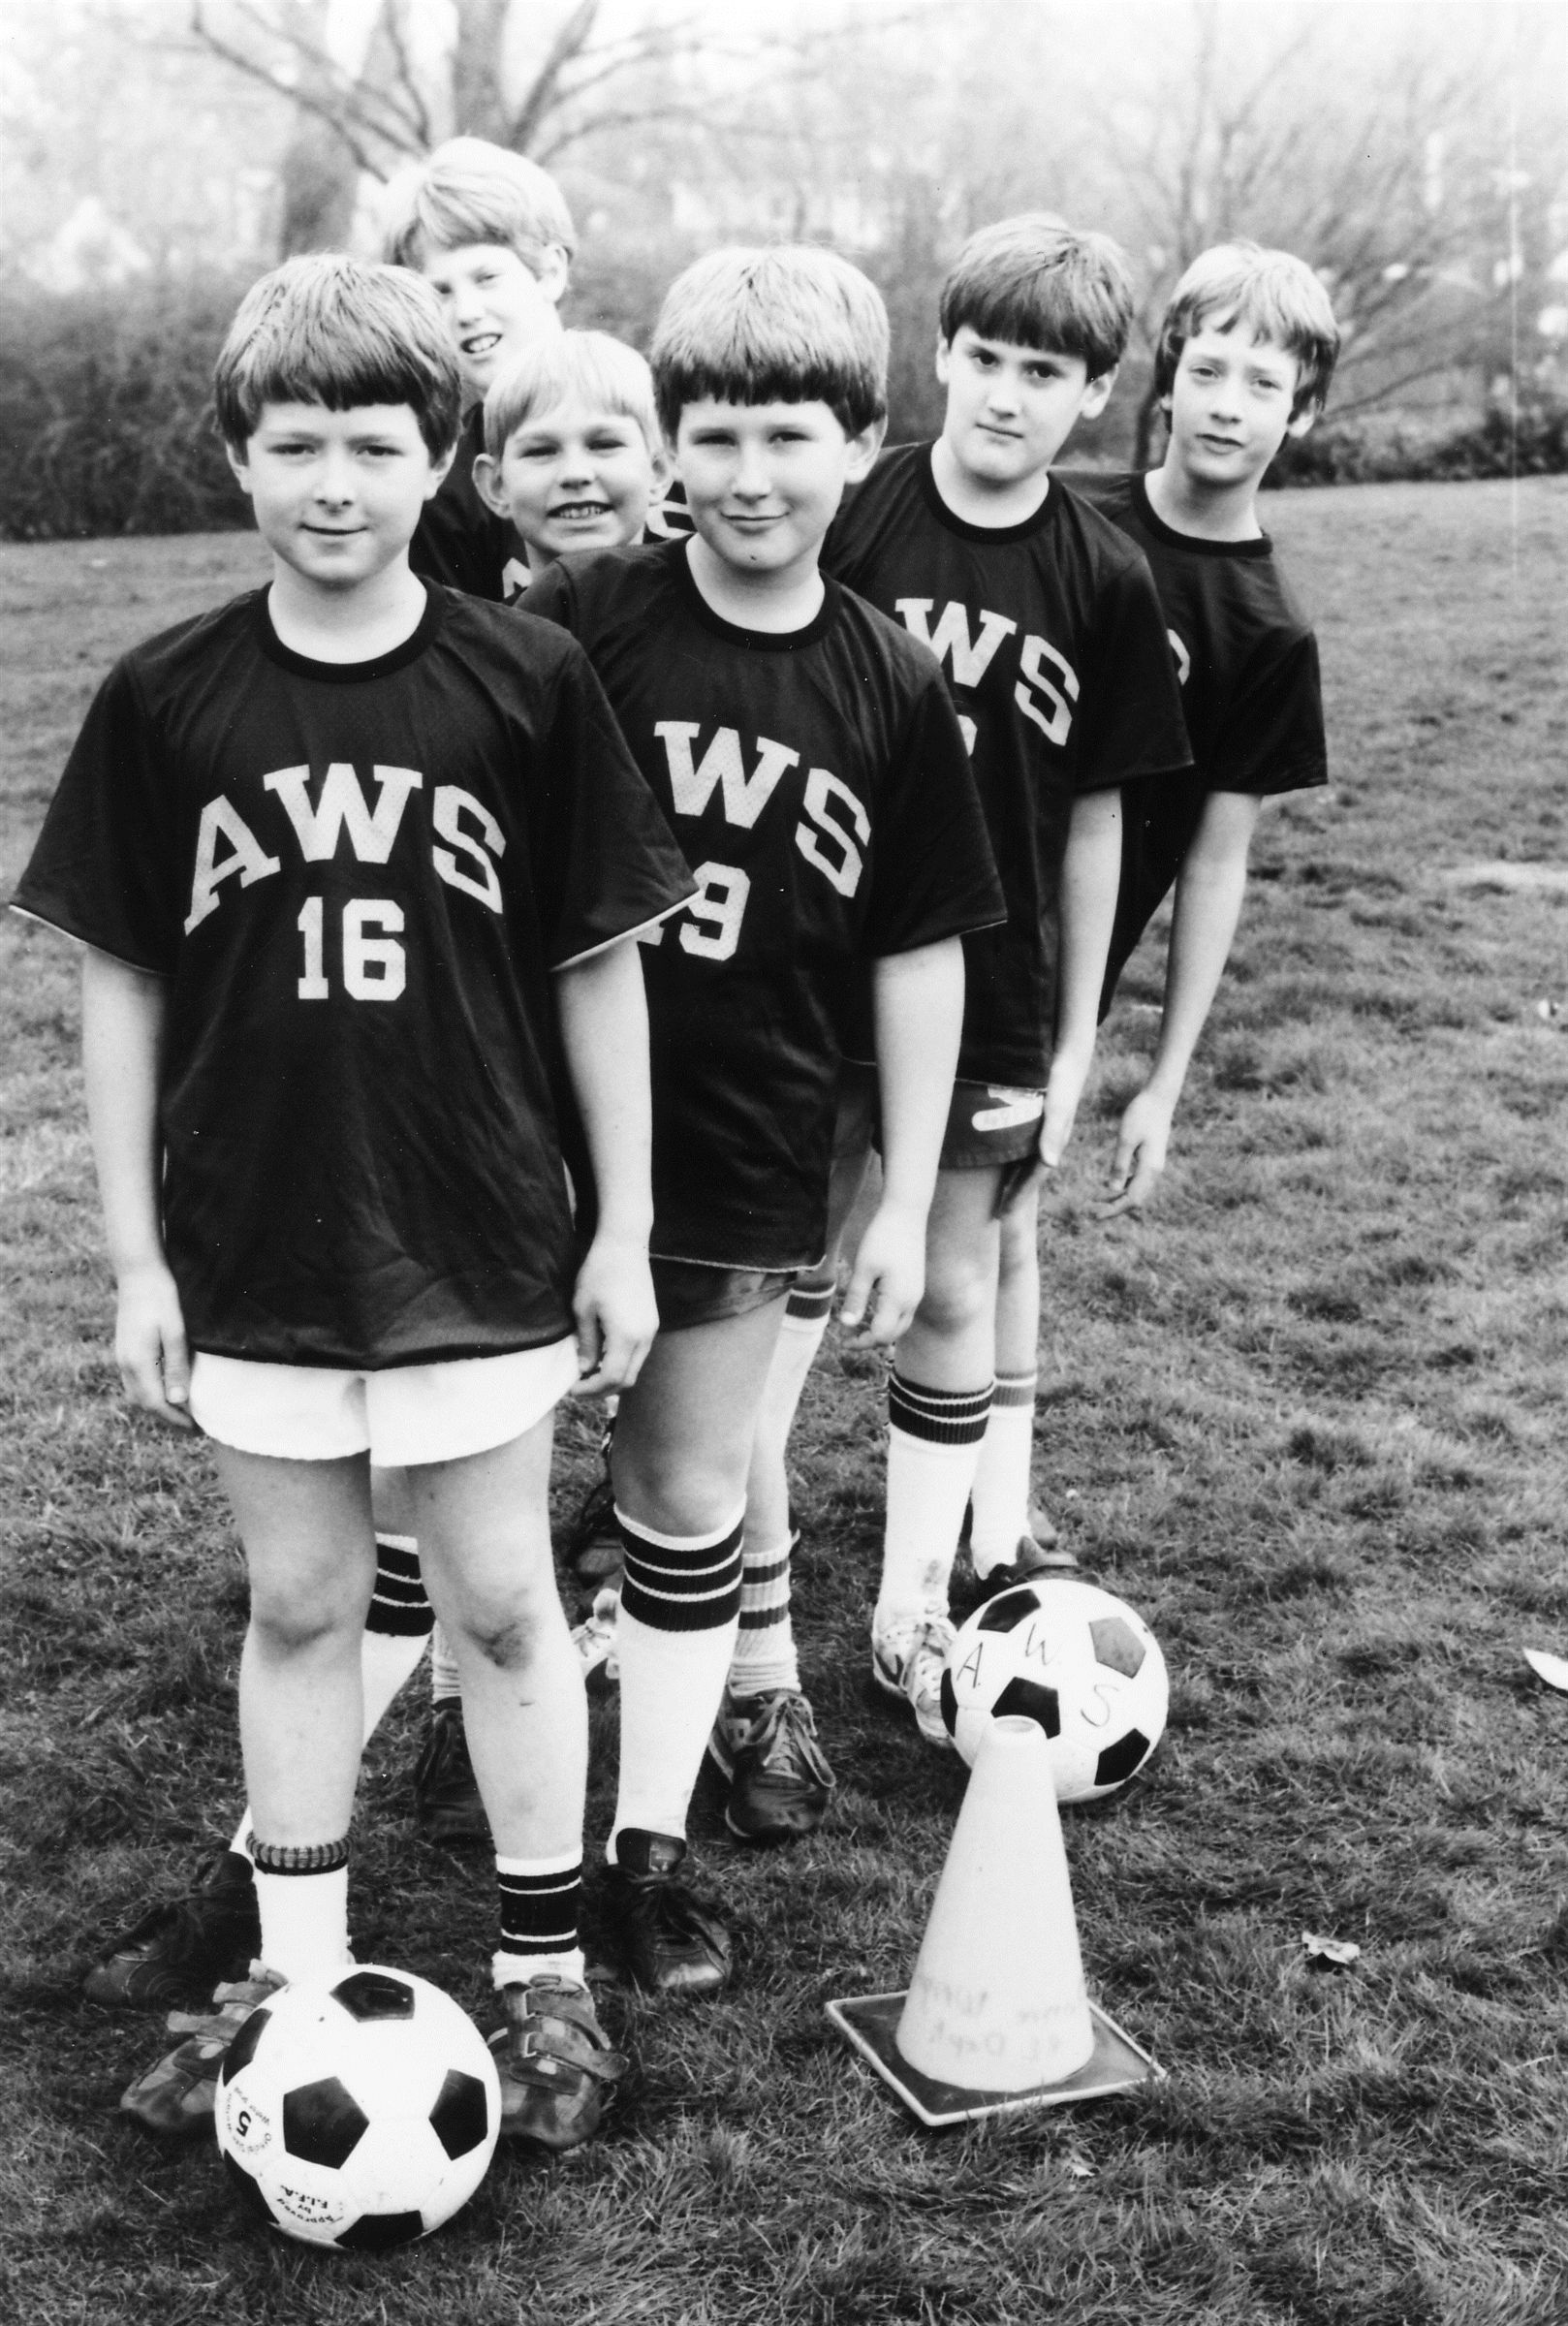 Boys soccer team in the 80s